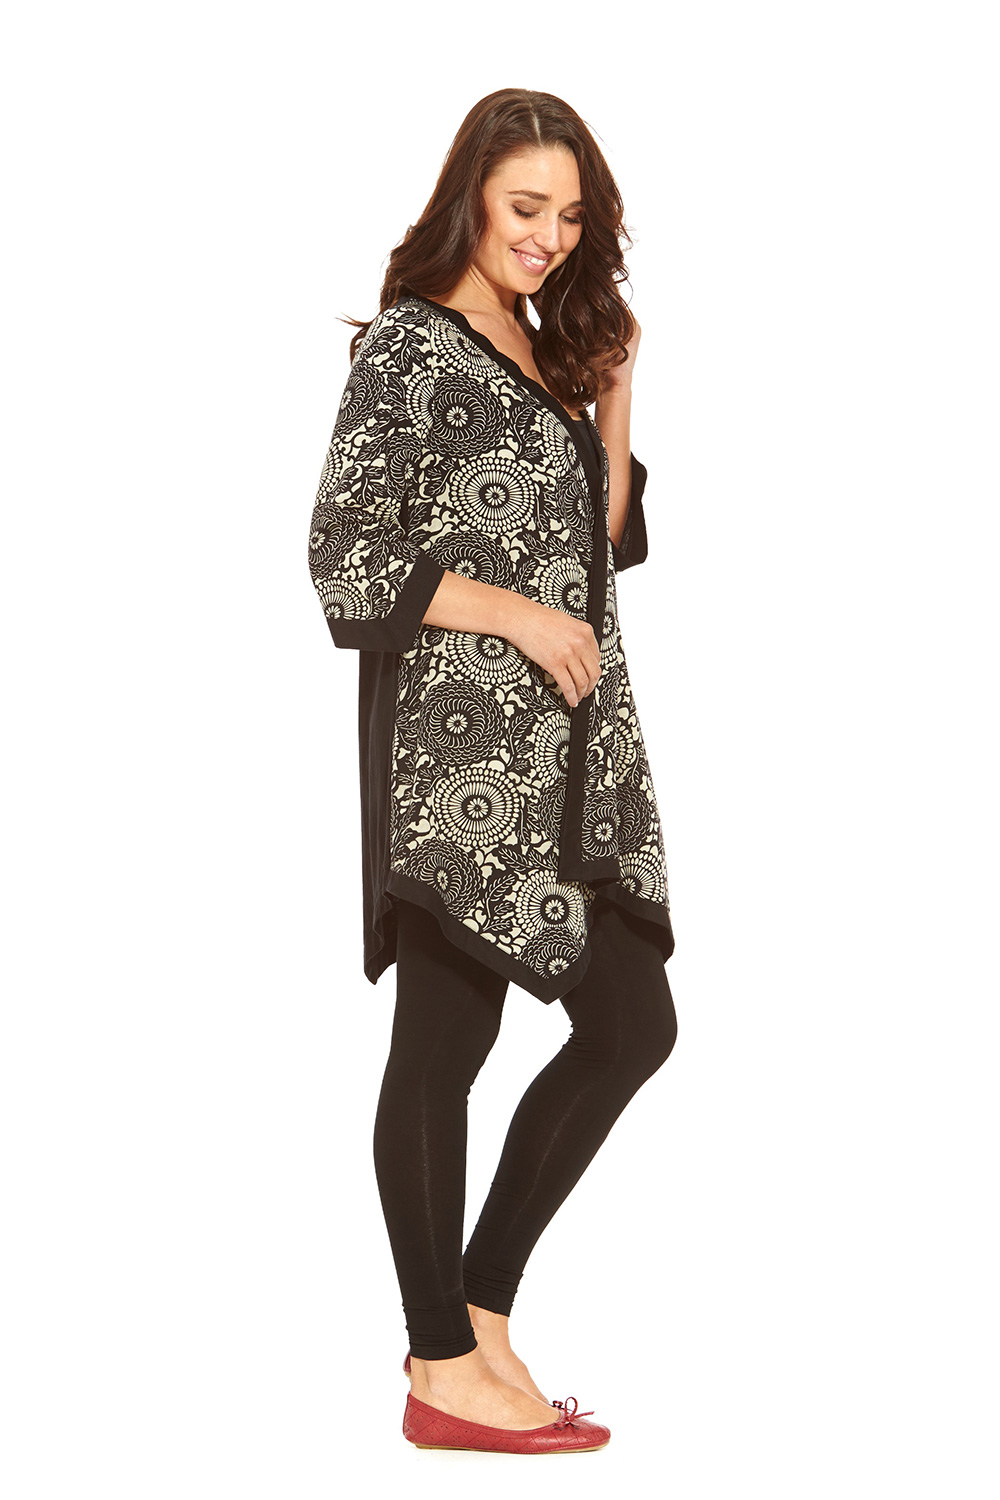 Long Sleeve Tunic. The ultra chic appeal of a long sleeve tunic never goes out of style. Effortlessly versatile, tunics can be belted or worn as they are for endless combinations in style! From printed tunic blouses to solid color V-necks, the possibilities for mixing and matching long sleeve tunics with different skirts, pants and shorts go on and on.